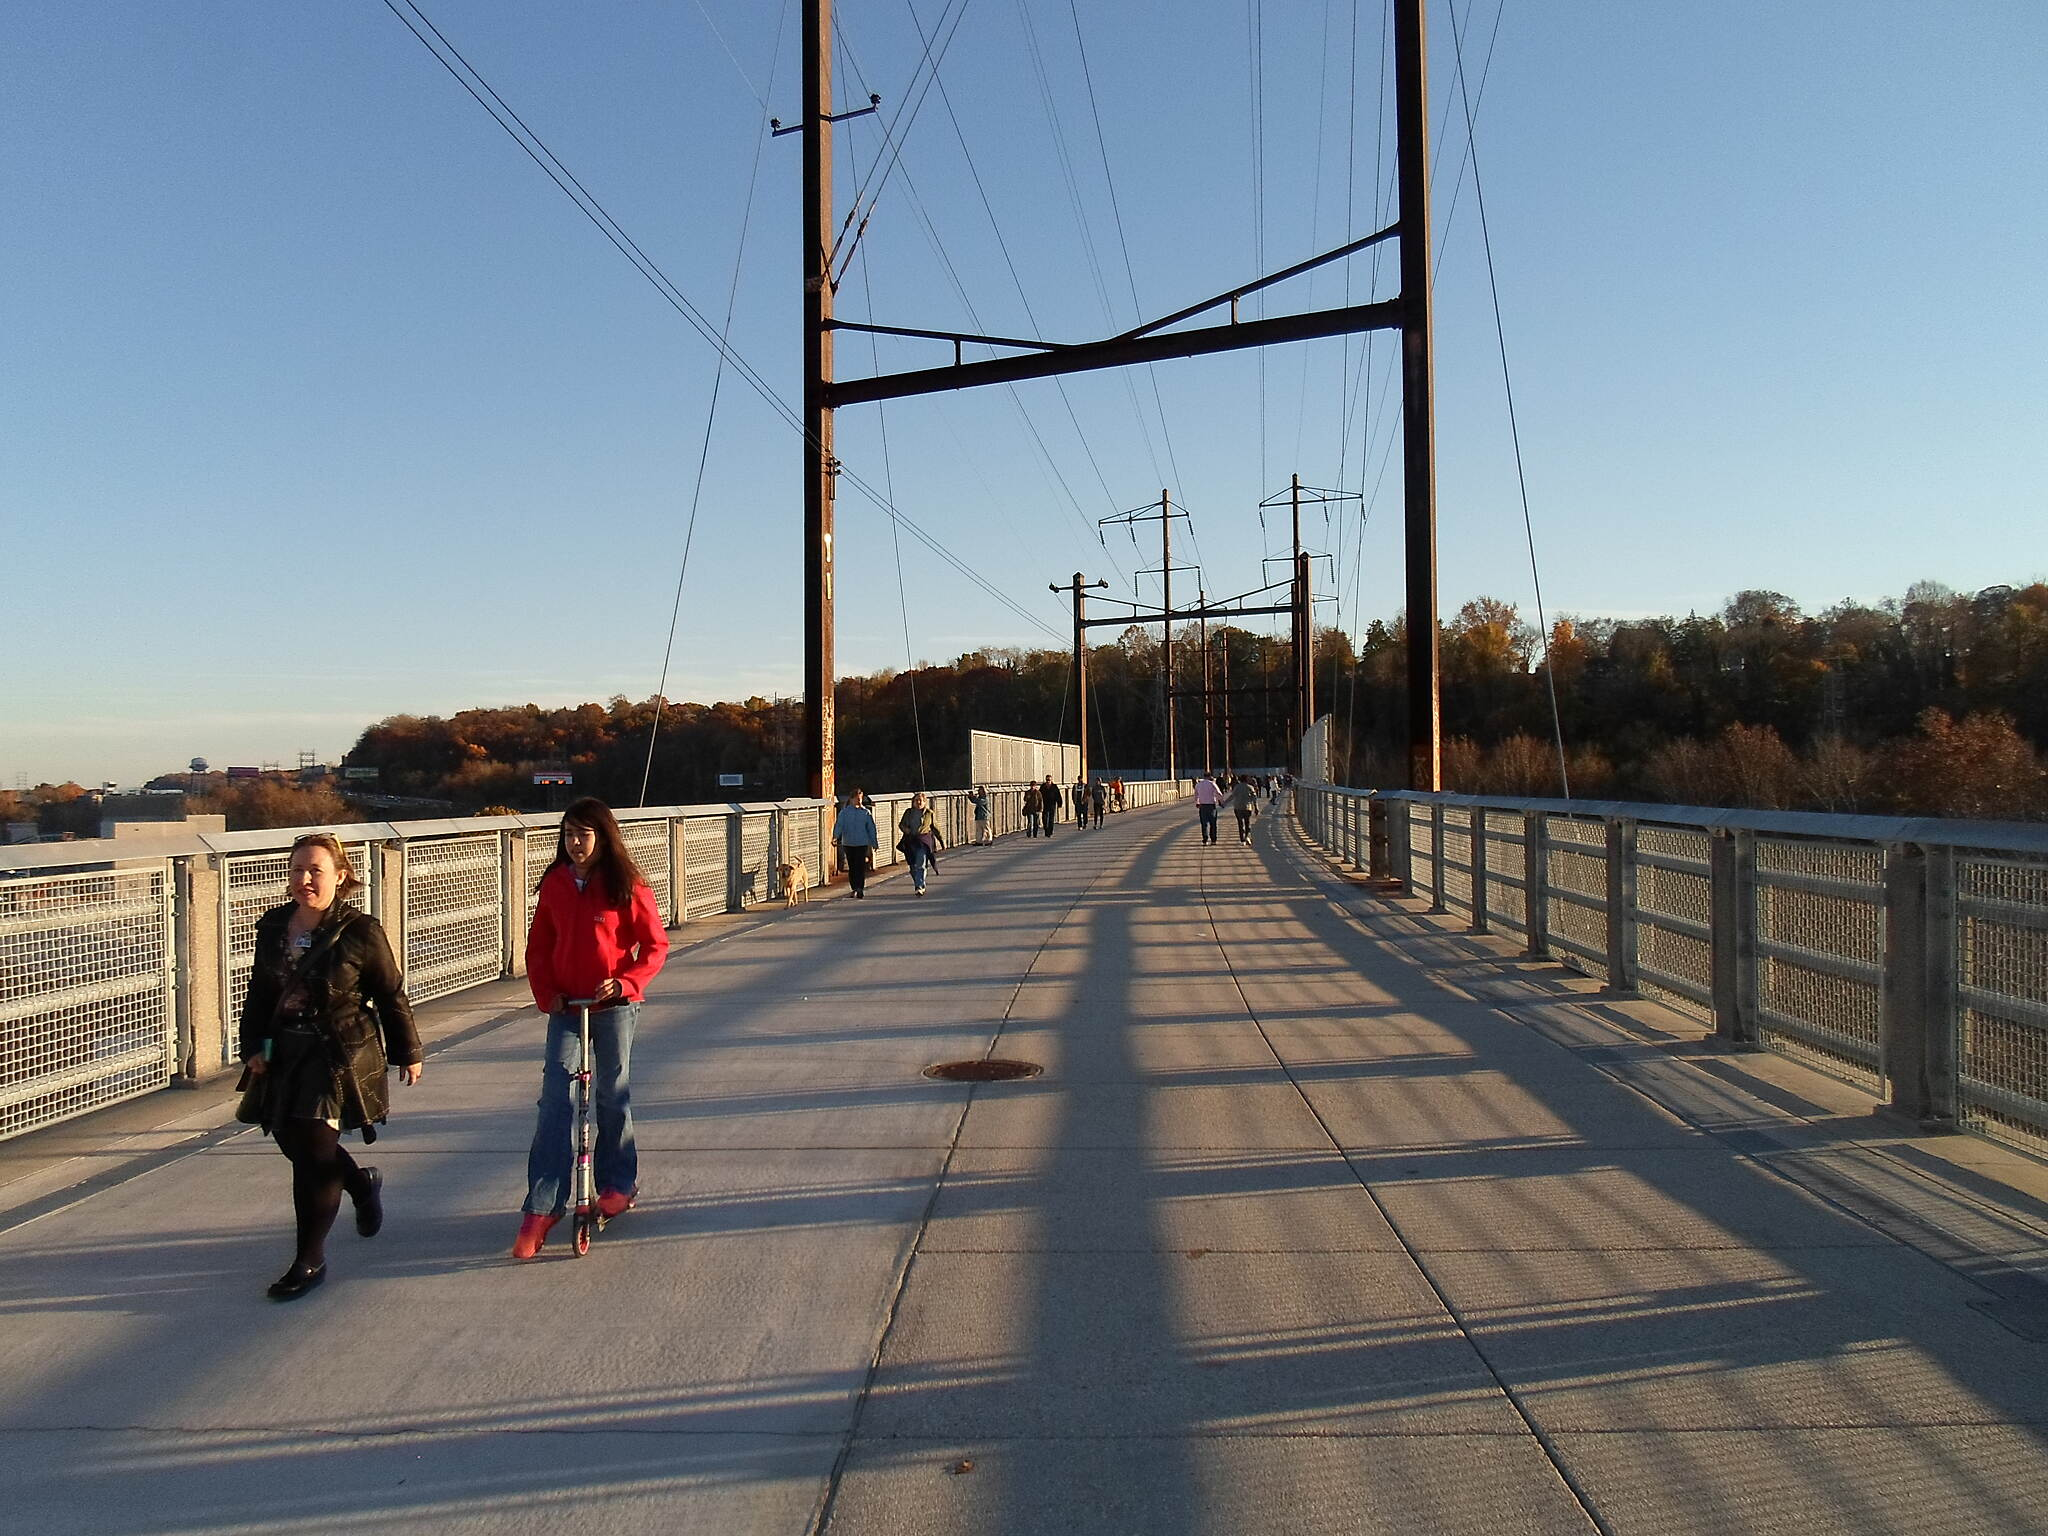 Manayunk Bridge Trail Manayunk Bridge Trail This woman and her daughter were enjoying the warm, autumn evening by walking, and riding a scooter, respectively, near the Manayunk side of the trestle. Taken Nov. 2015.